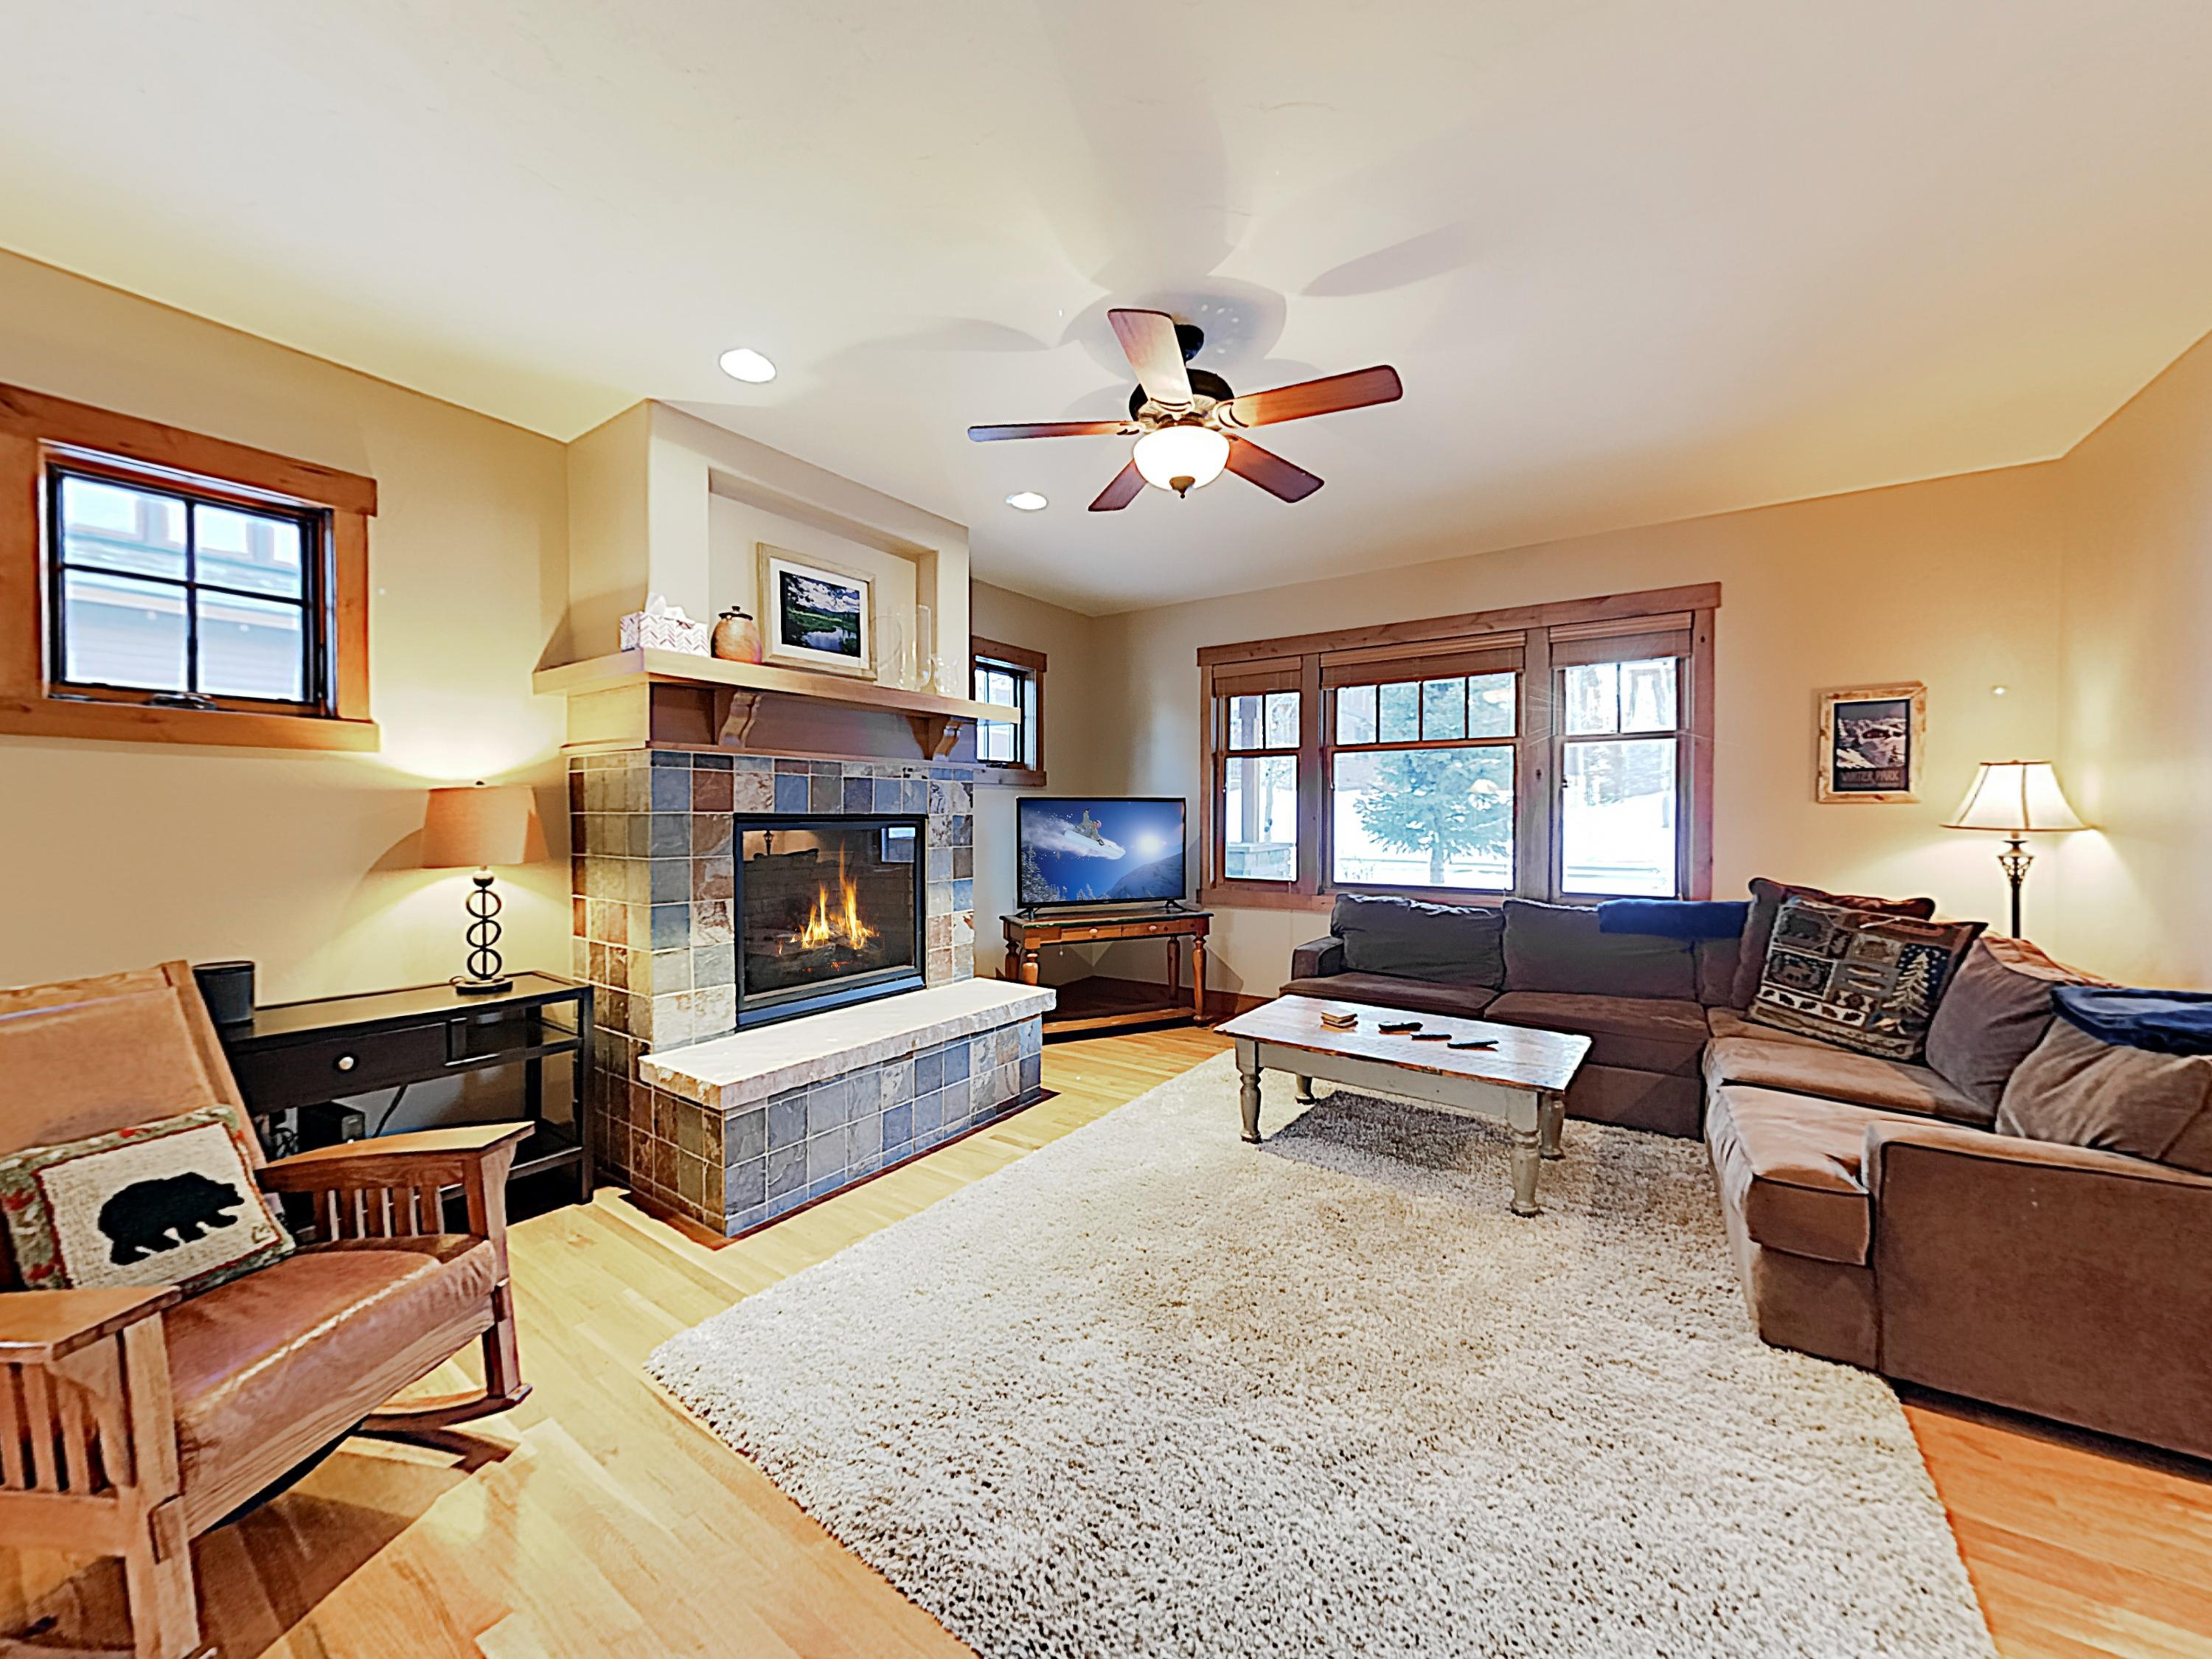 Welcome to Fraser! This home is professionally managed by TurnKey Vacation Rentals.